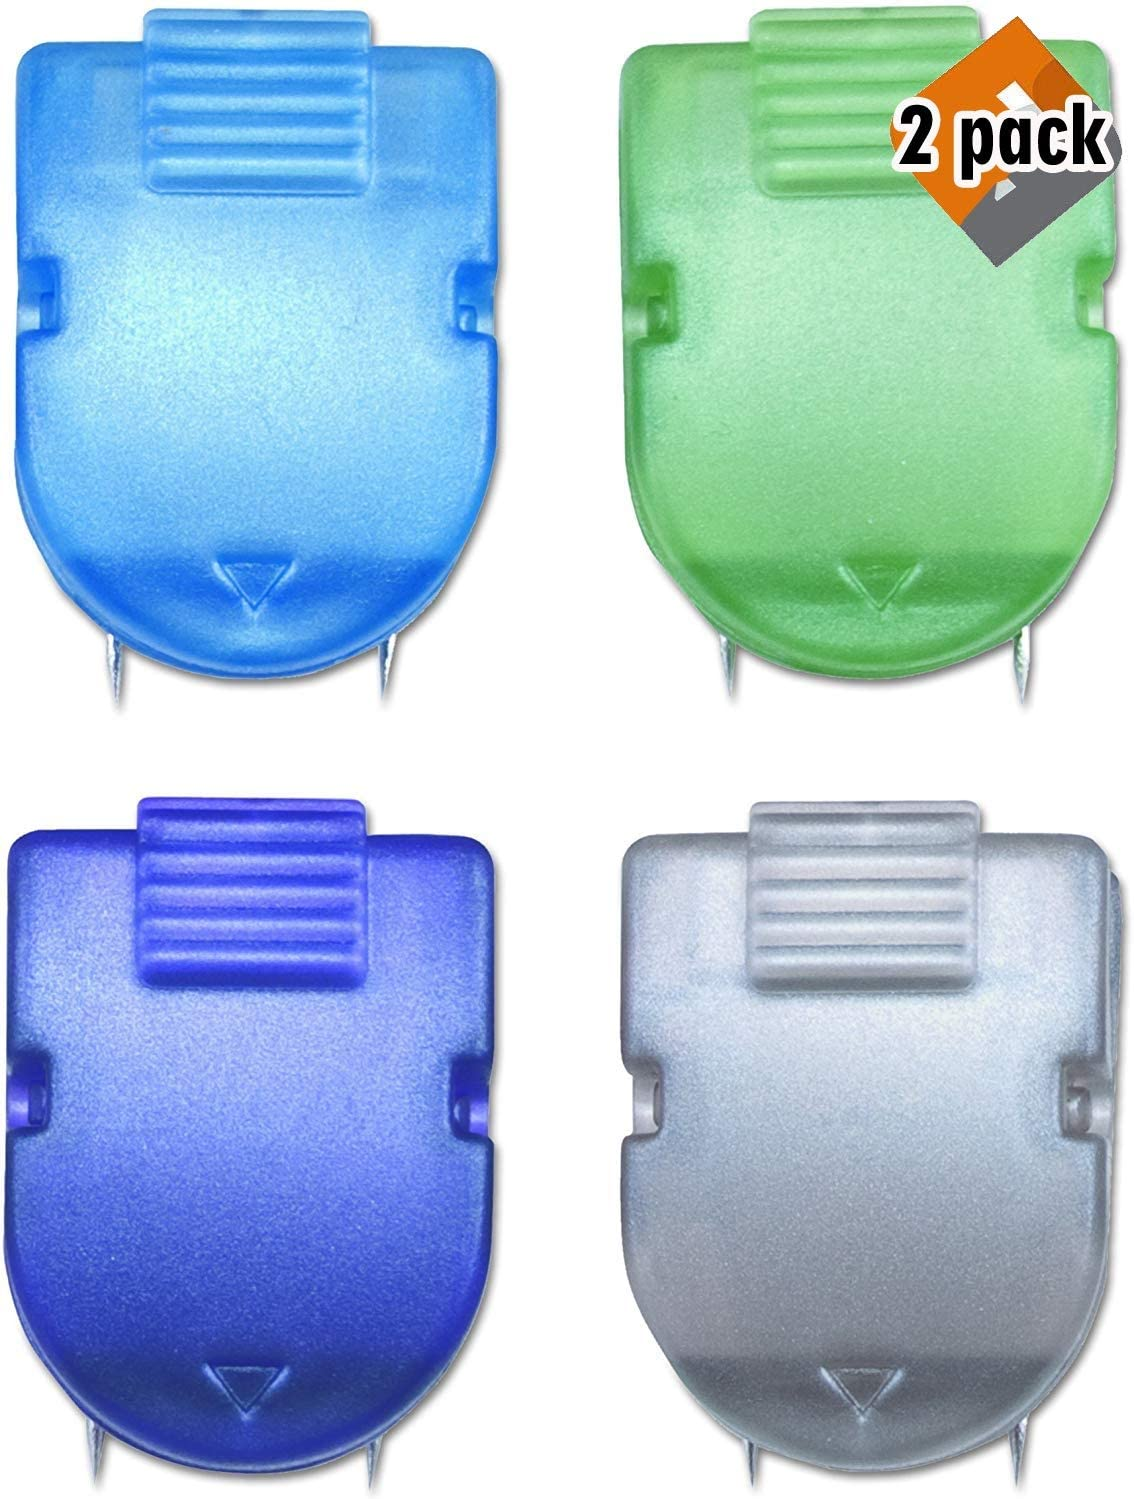 Standard Size Assorted Metallic Colors Box of 20 40-Sheet Capacity ADVANTUS Panel Wall Clip for Fabric Panels 75338